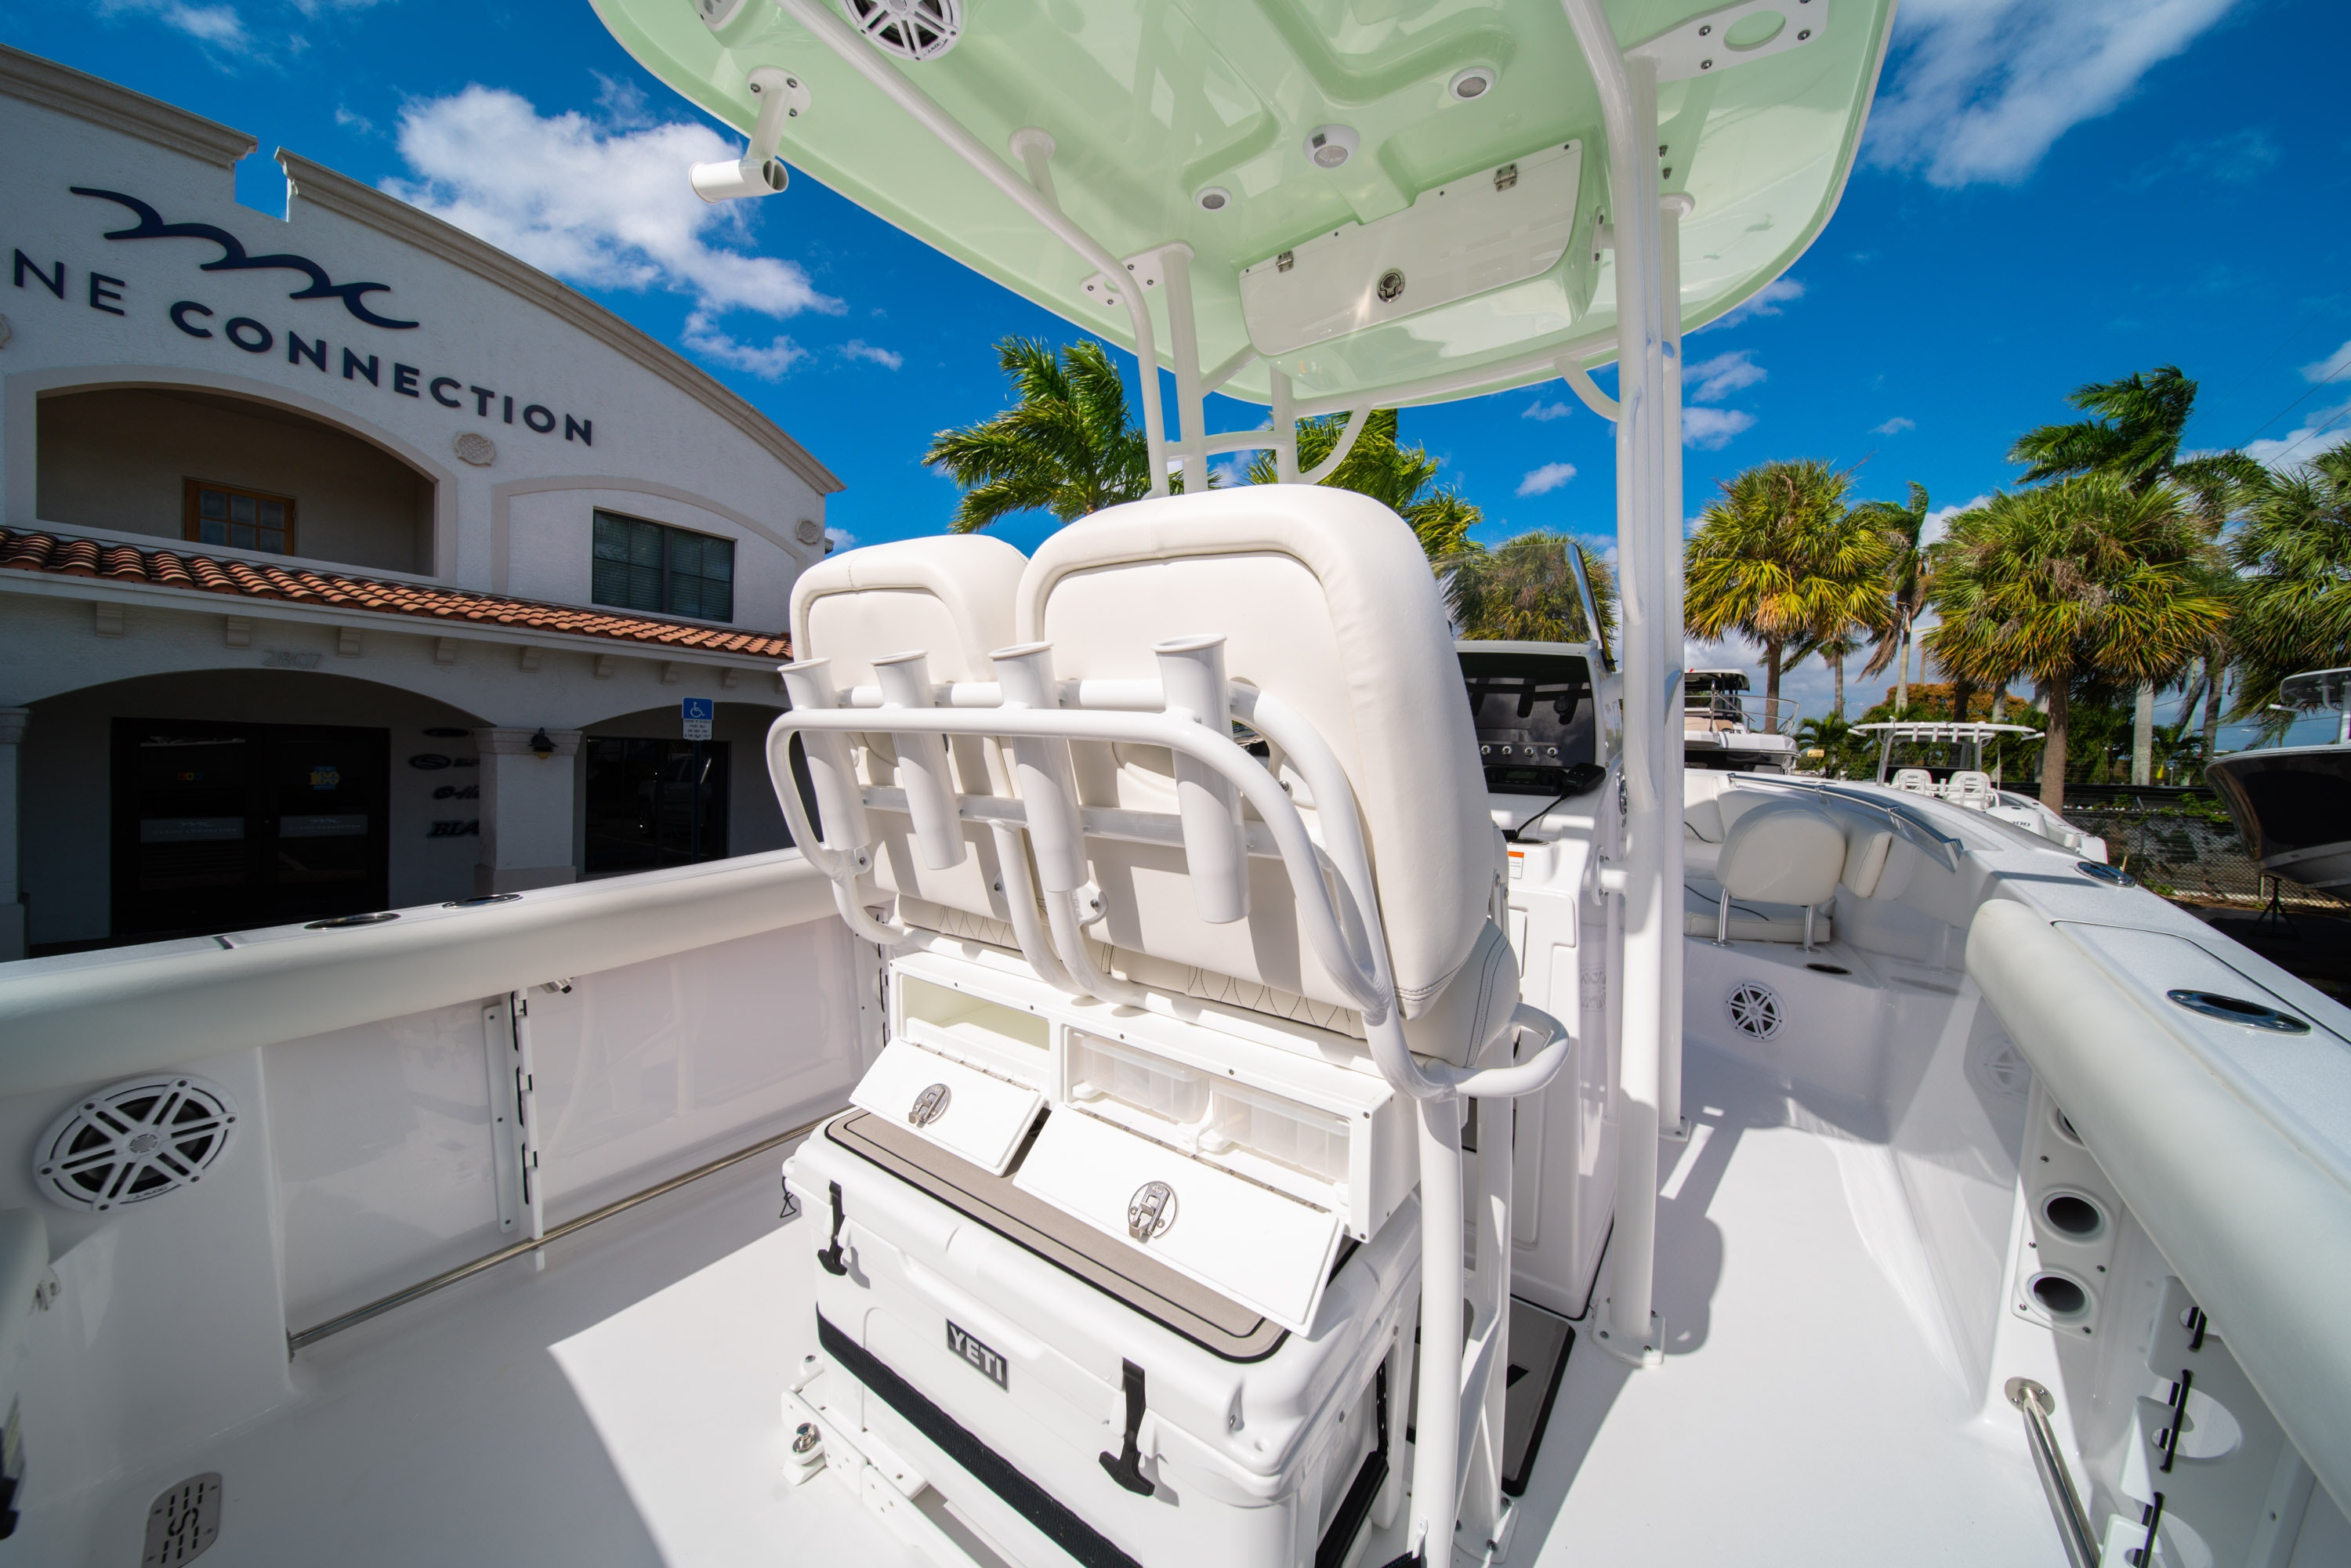 Thumbnail 16 for New 2020 Sportsman Heritage 231 Center Console boat for sale in West Palm Beach, FL